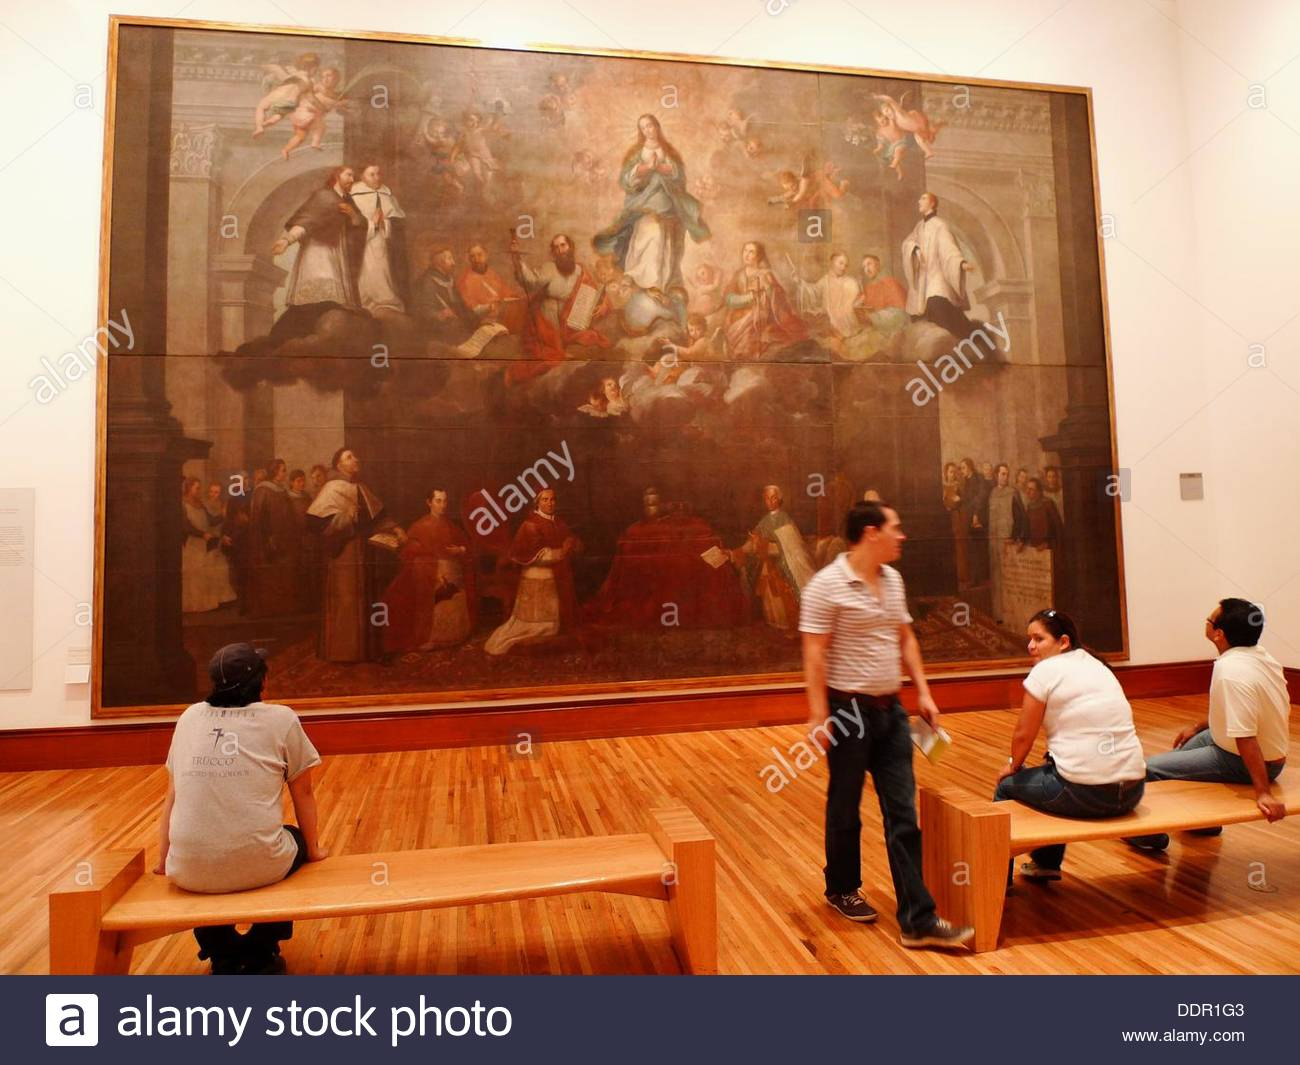 Palacio Nacional Mexico City, Exhibition hall. Museo Nacional de Arte (MUNAL). Mexico City Stock ...